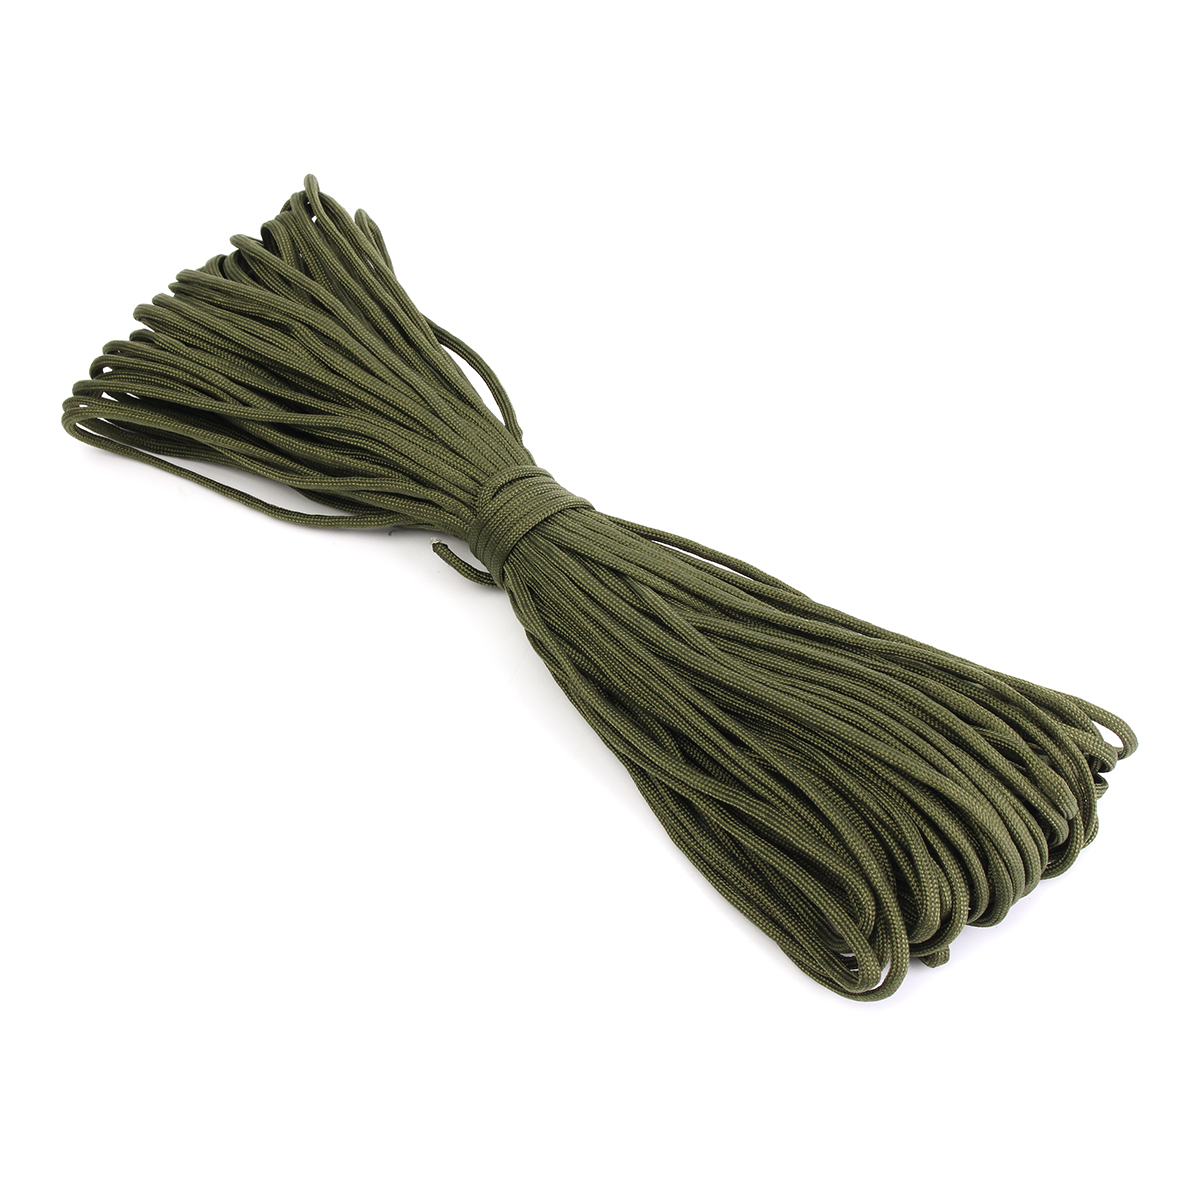 100FT/30M 550lb Paracord Parachute Lanyard 7 Strand Core Emergency Army Green Rope